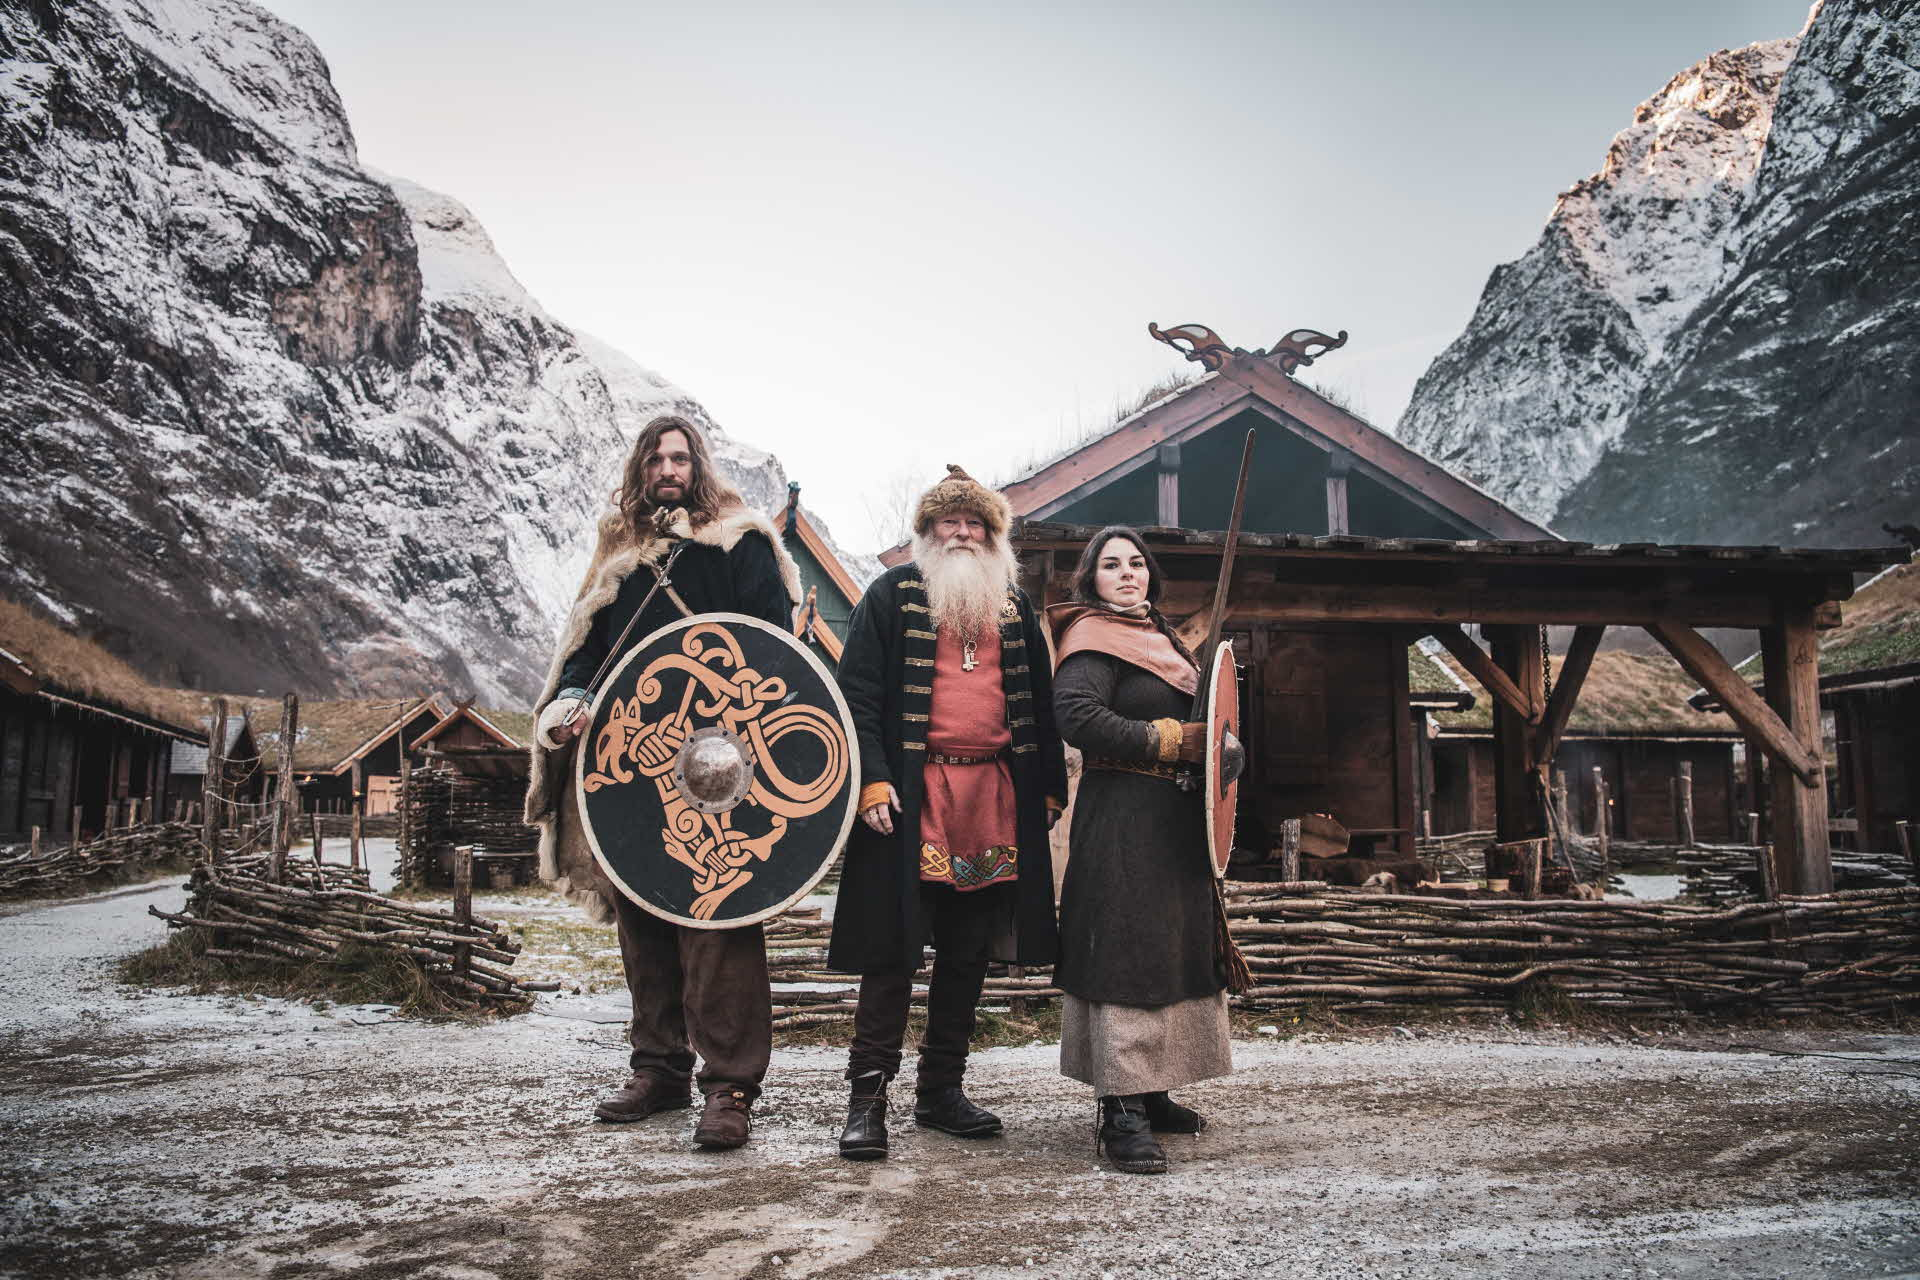 3 'authentic' Vikings standing in front of chief's house in Viking Valley Gudvangen on crisp winters day surrounded by high mountains